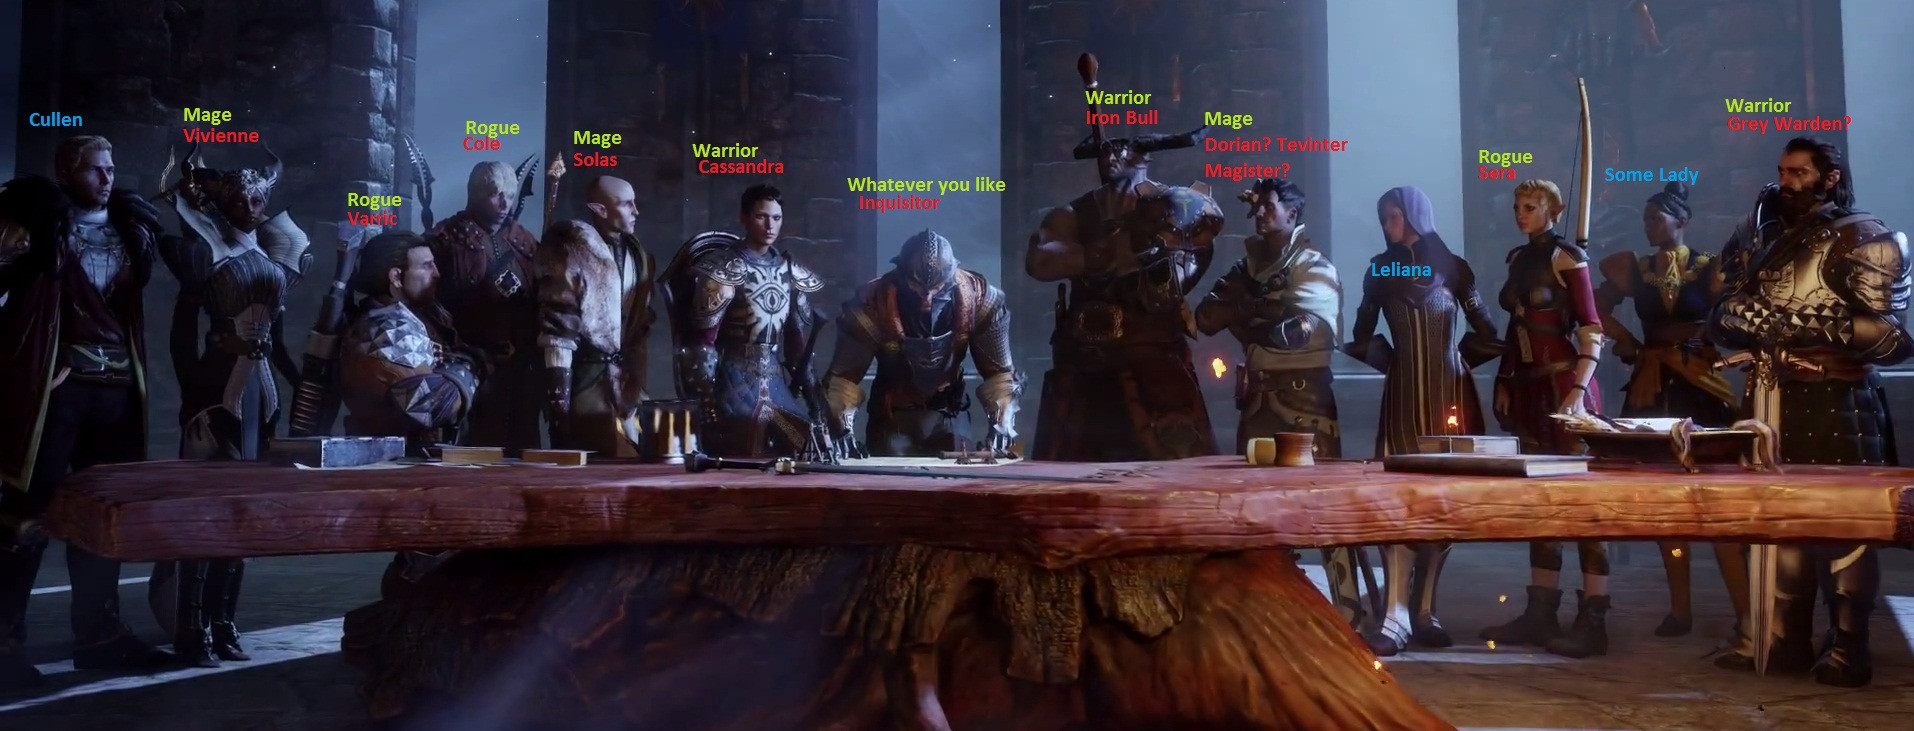 Dragon Age Inquisition_Characters